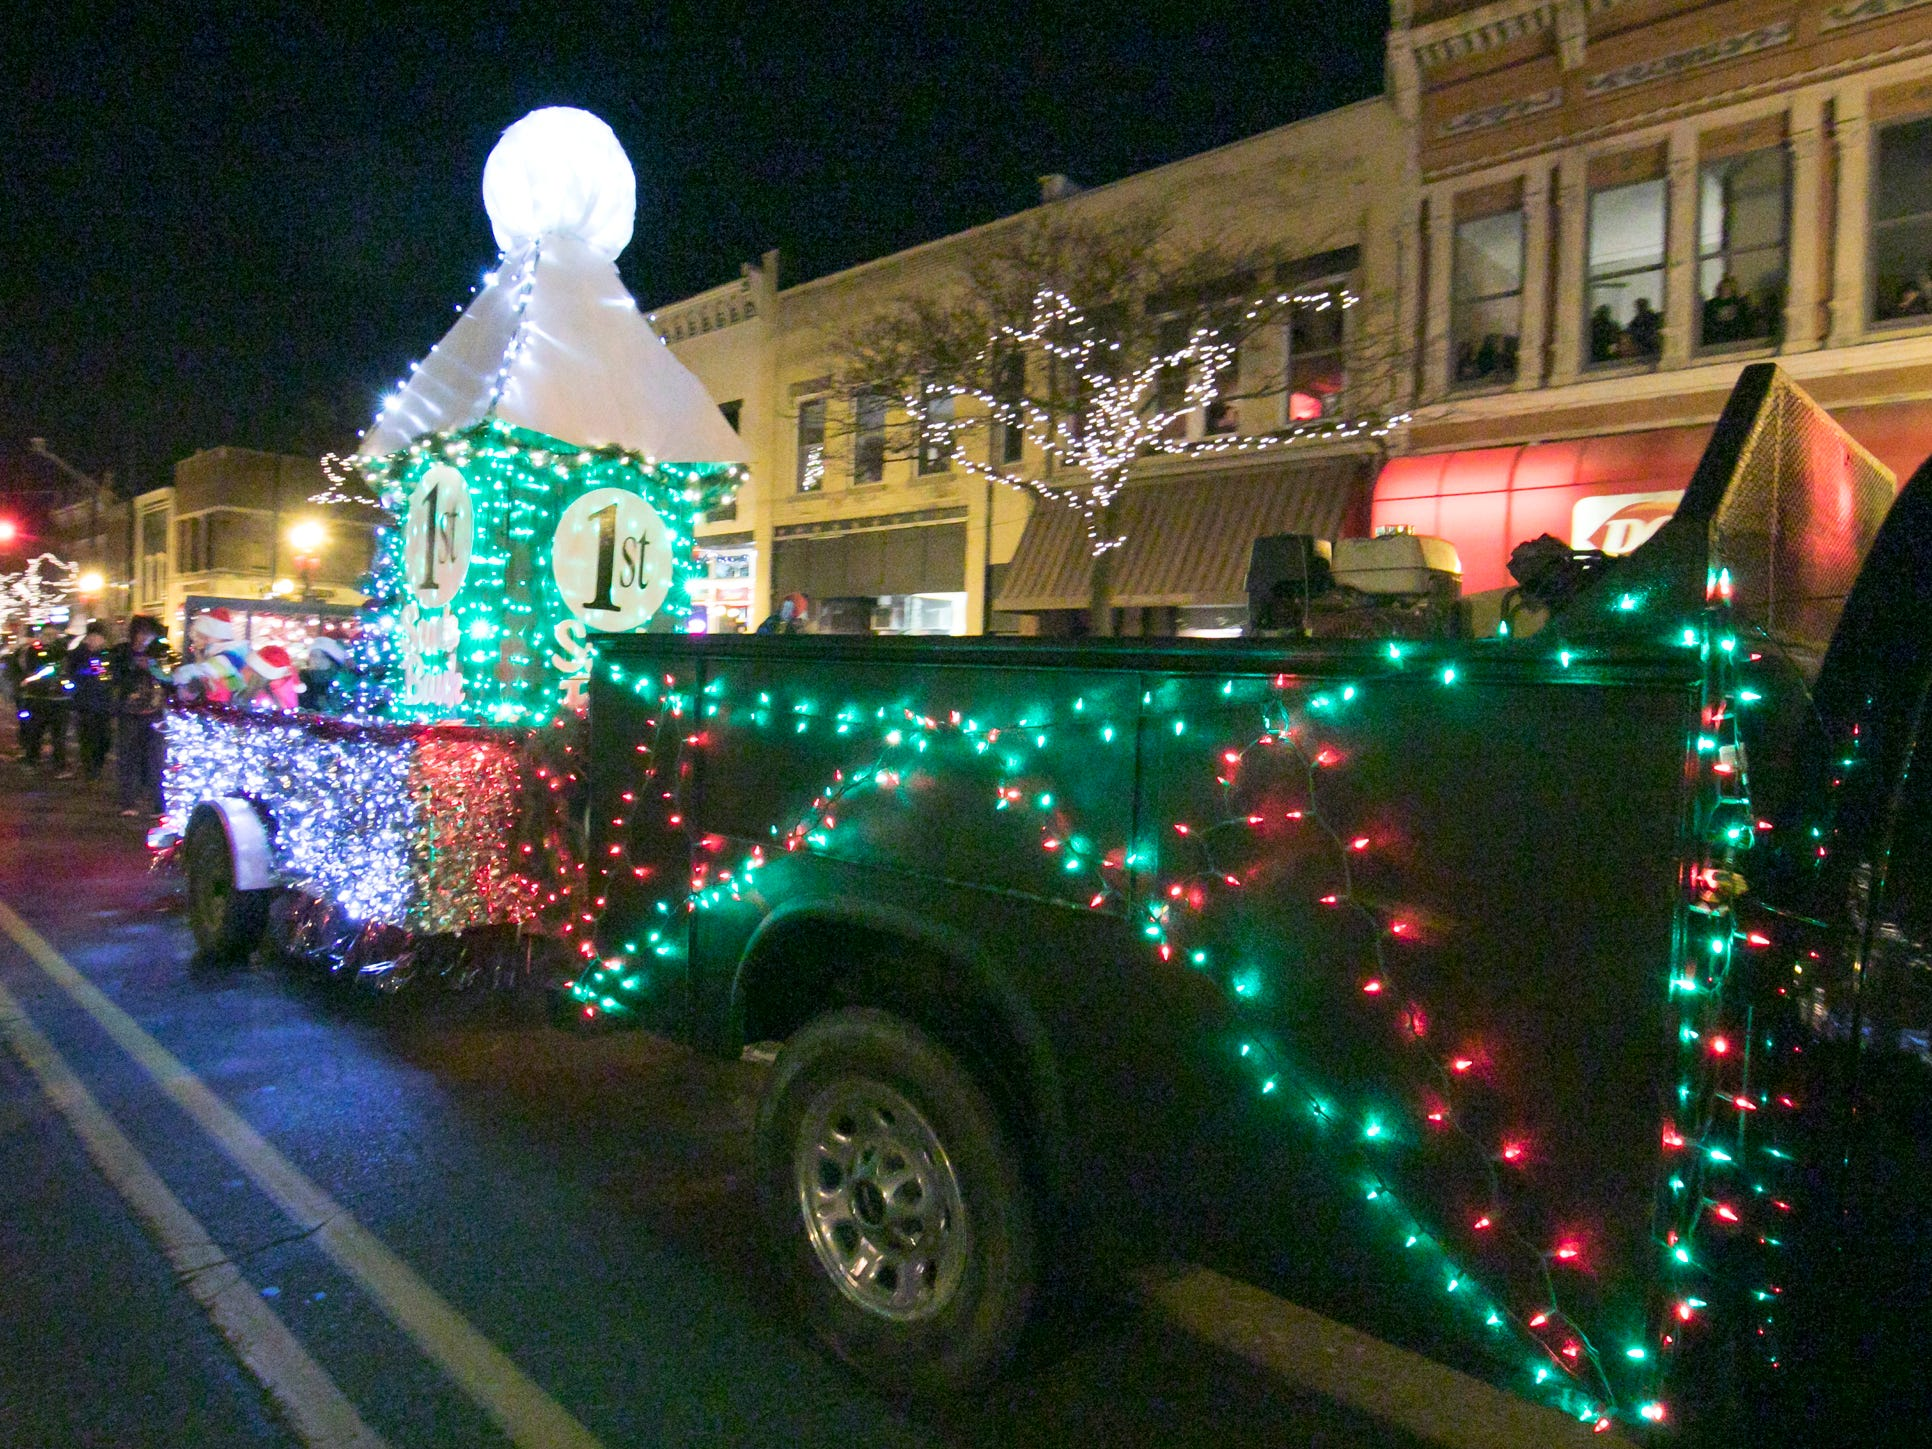 The First National Bank float rides in the Fantasy of Lights parade Friday, Nov. 23, 2018.